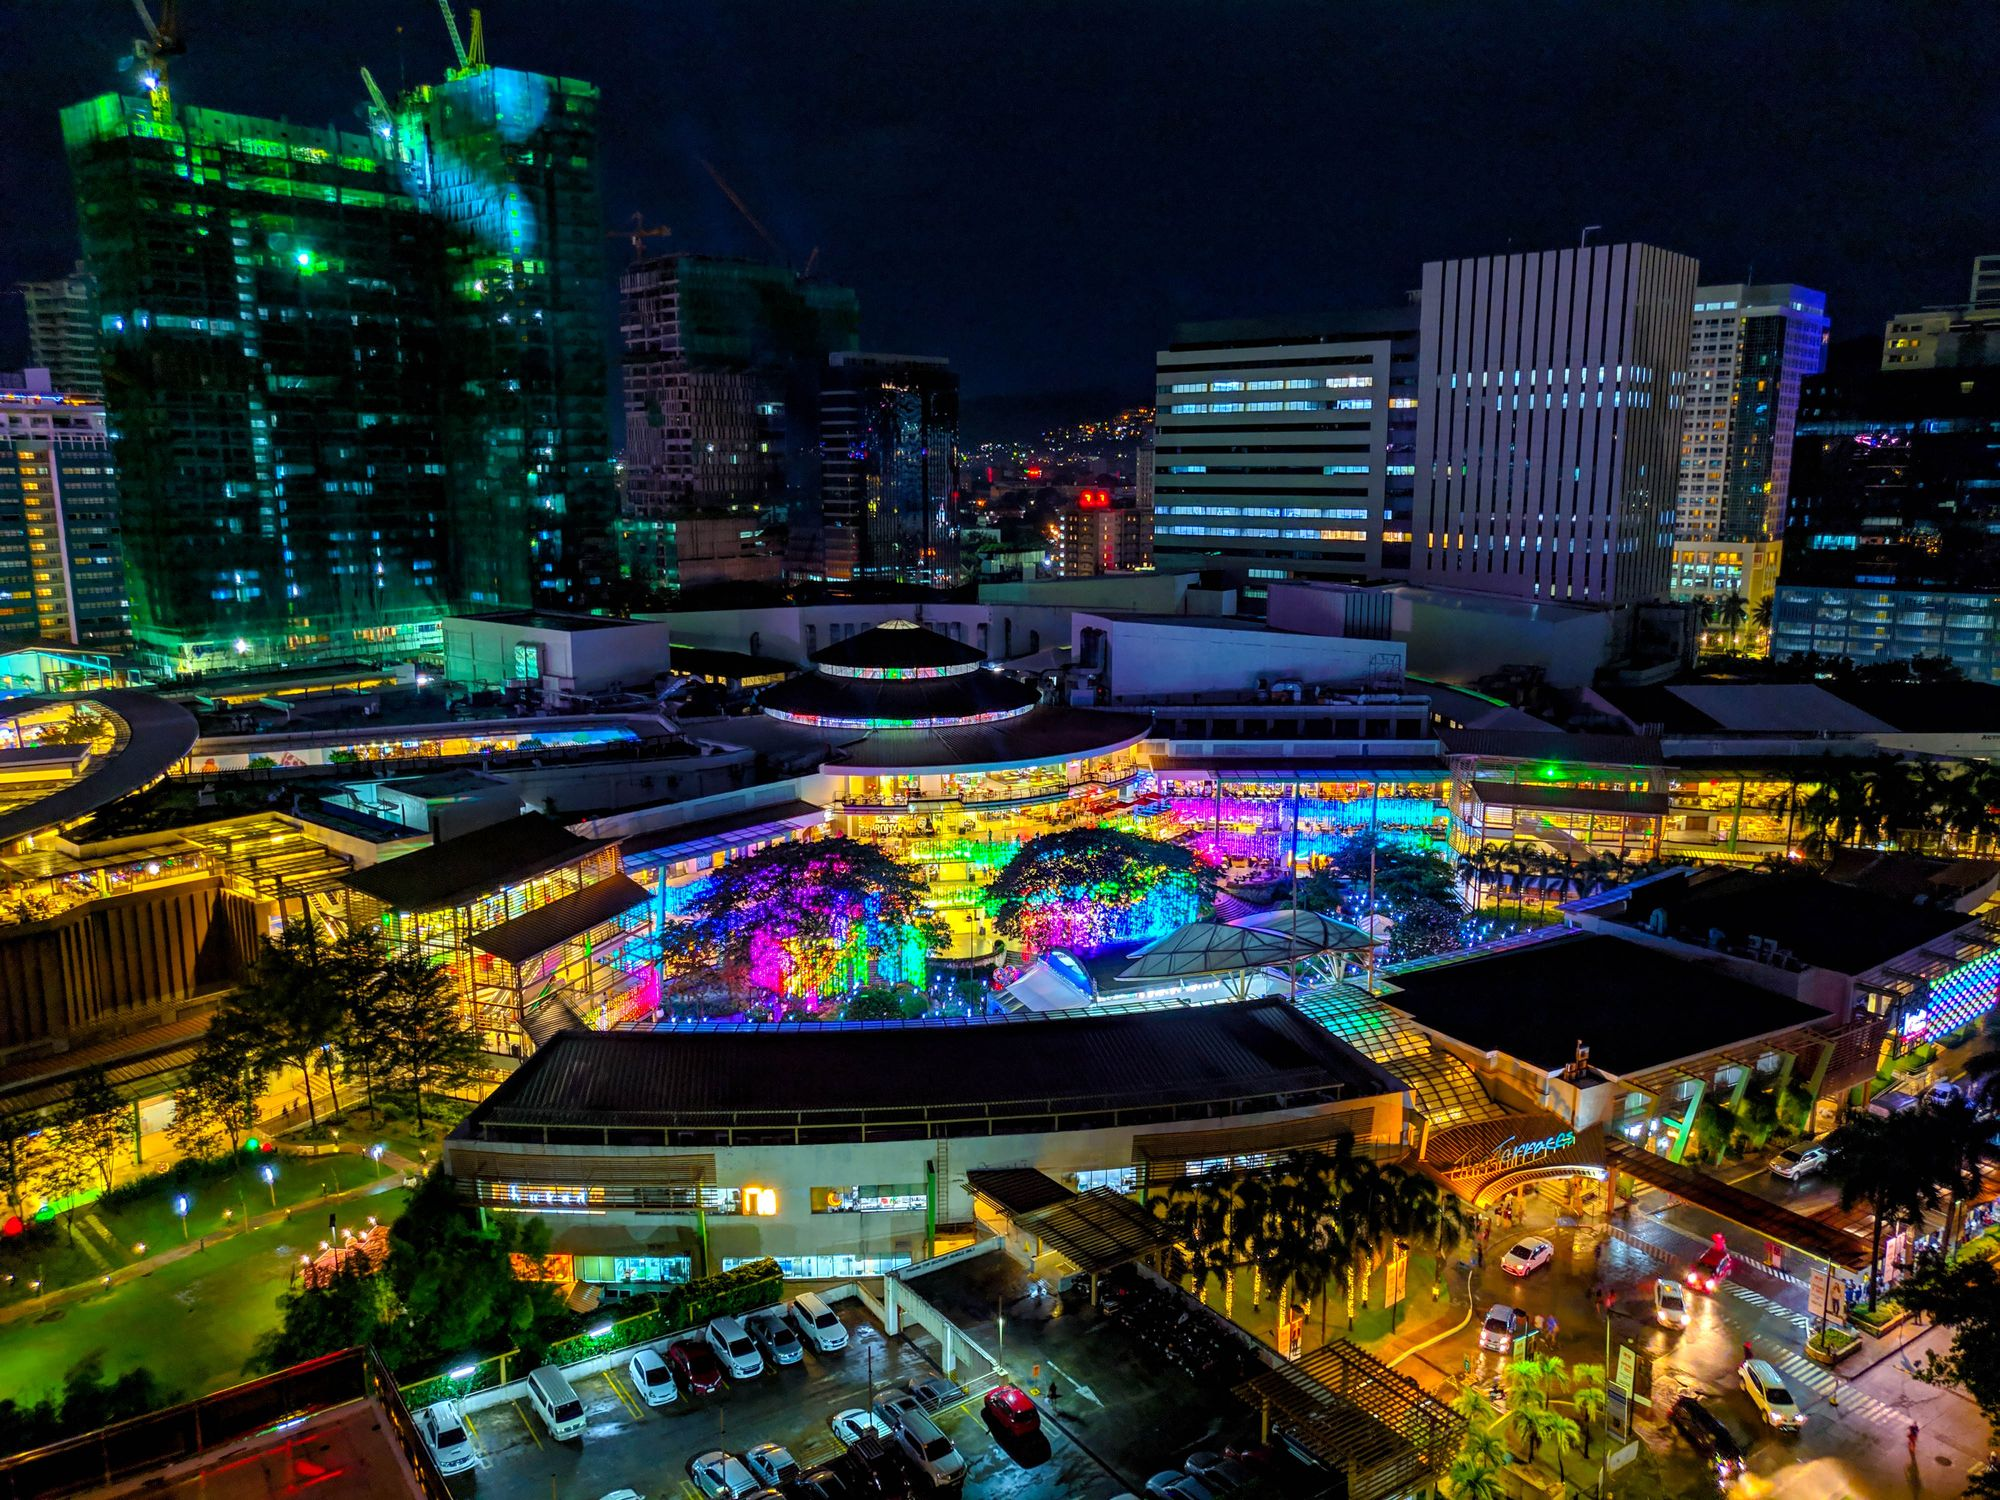 Buildings lit up with colorful lights at night in Cebu City, Philippines